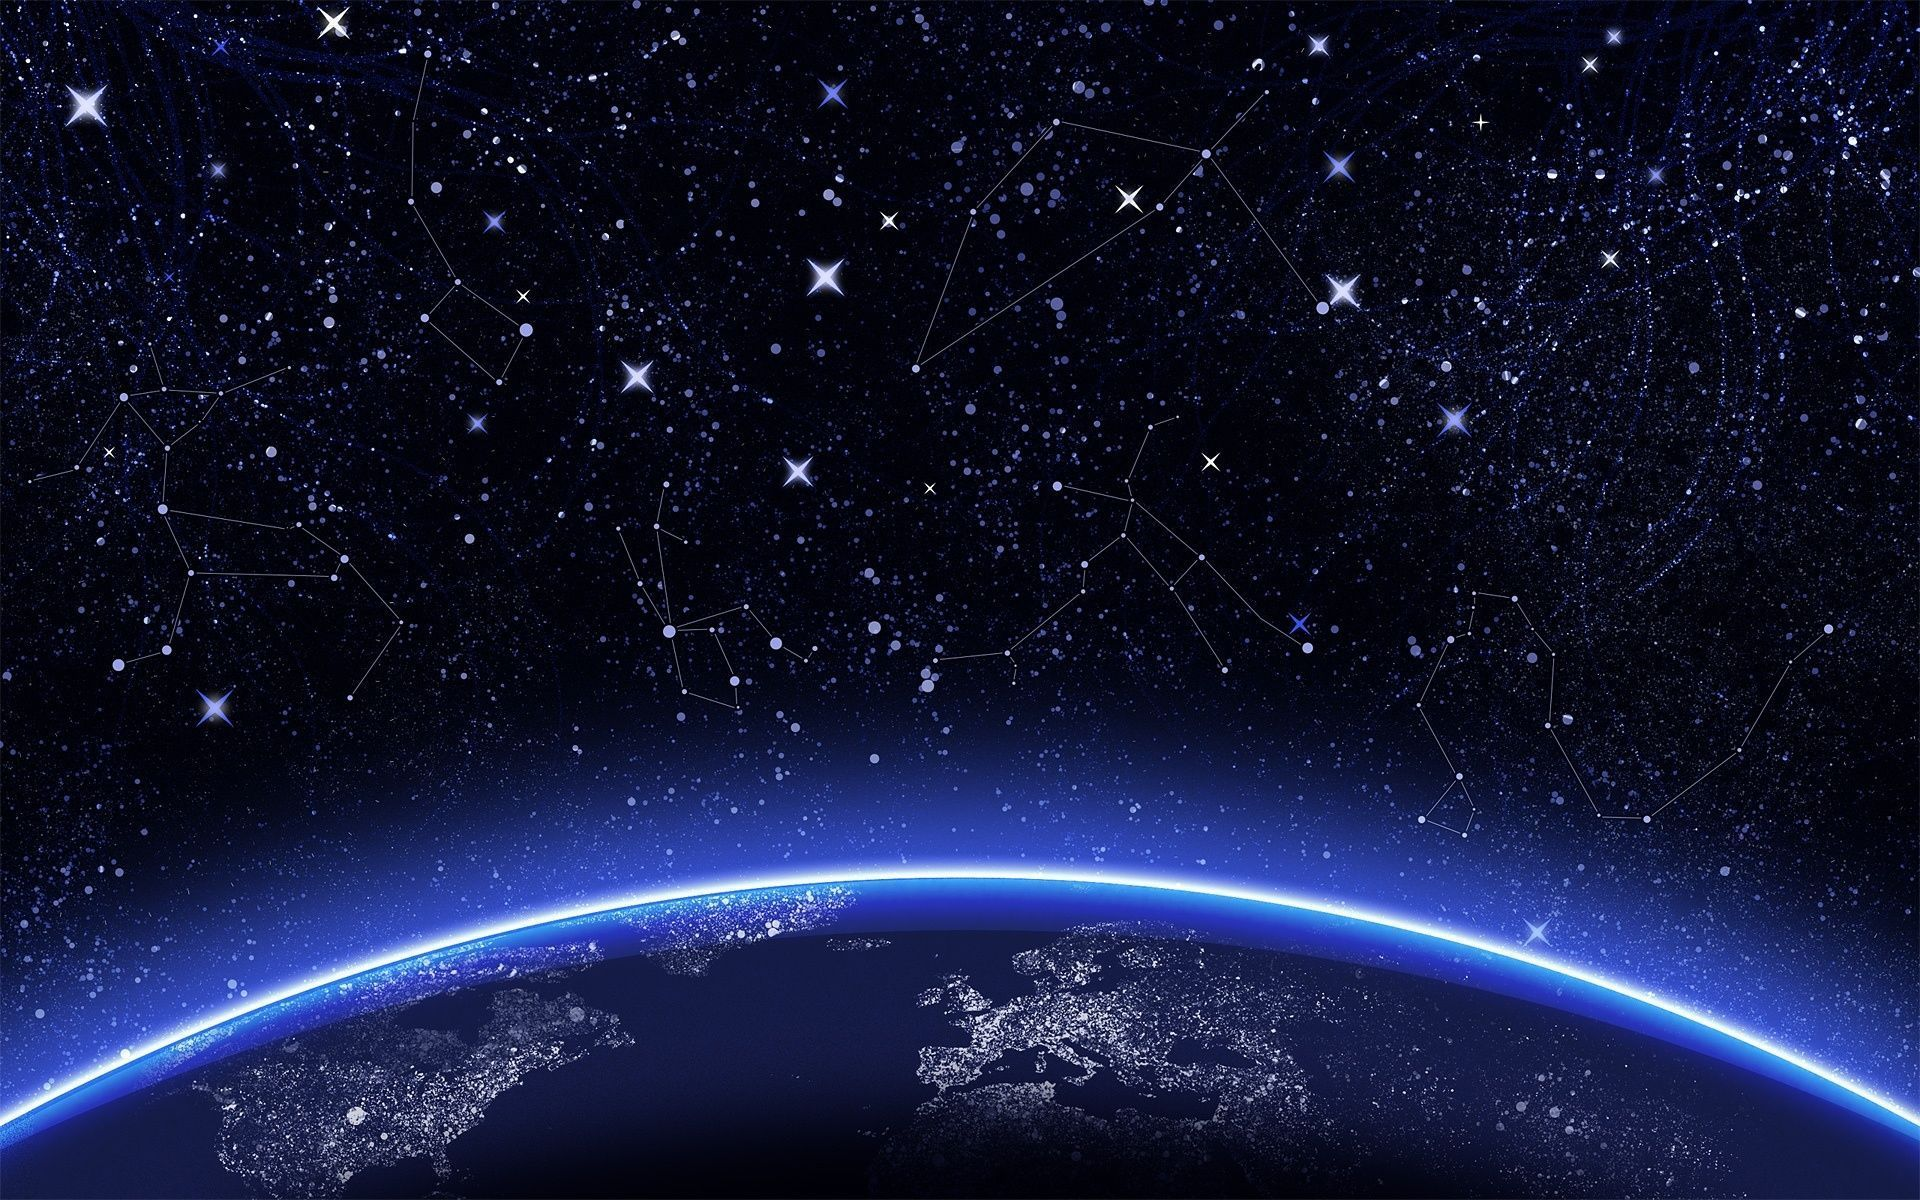 night sky stars wallpapers - wallpaper cave | epic car wallpapers